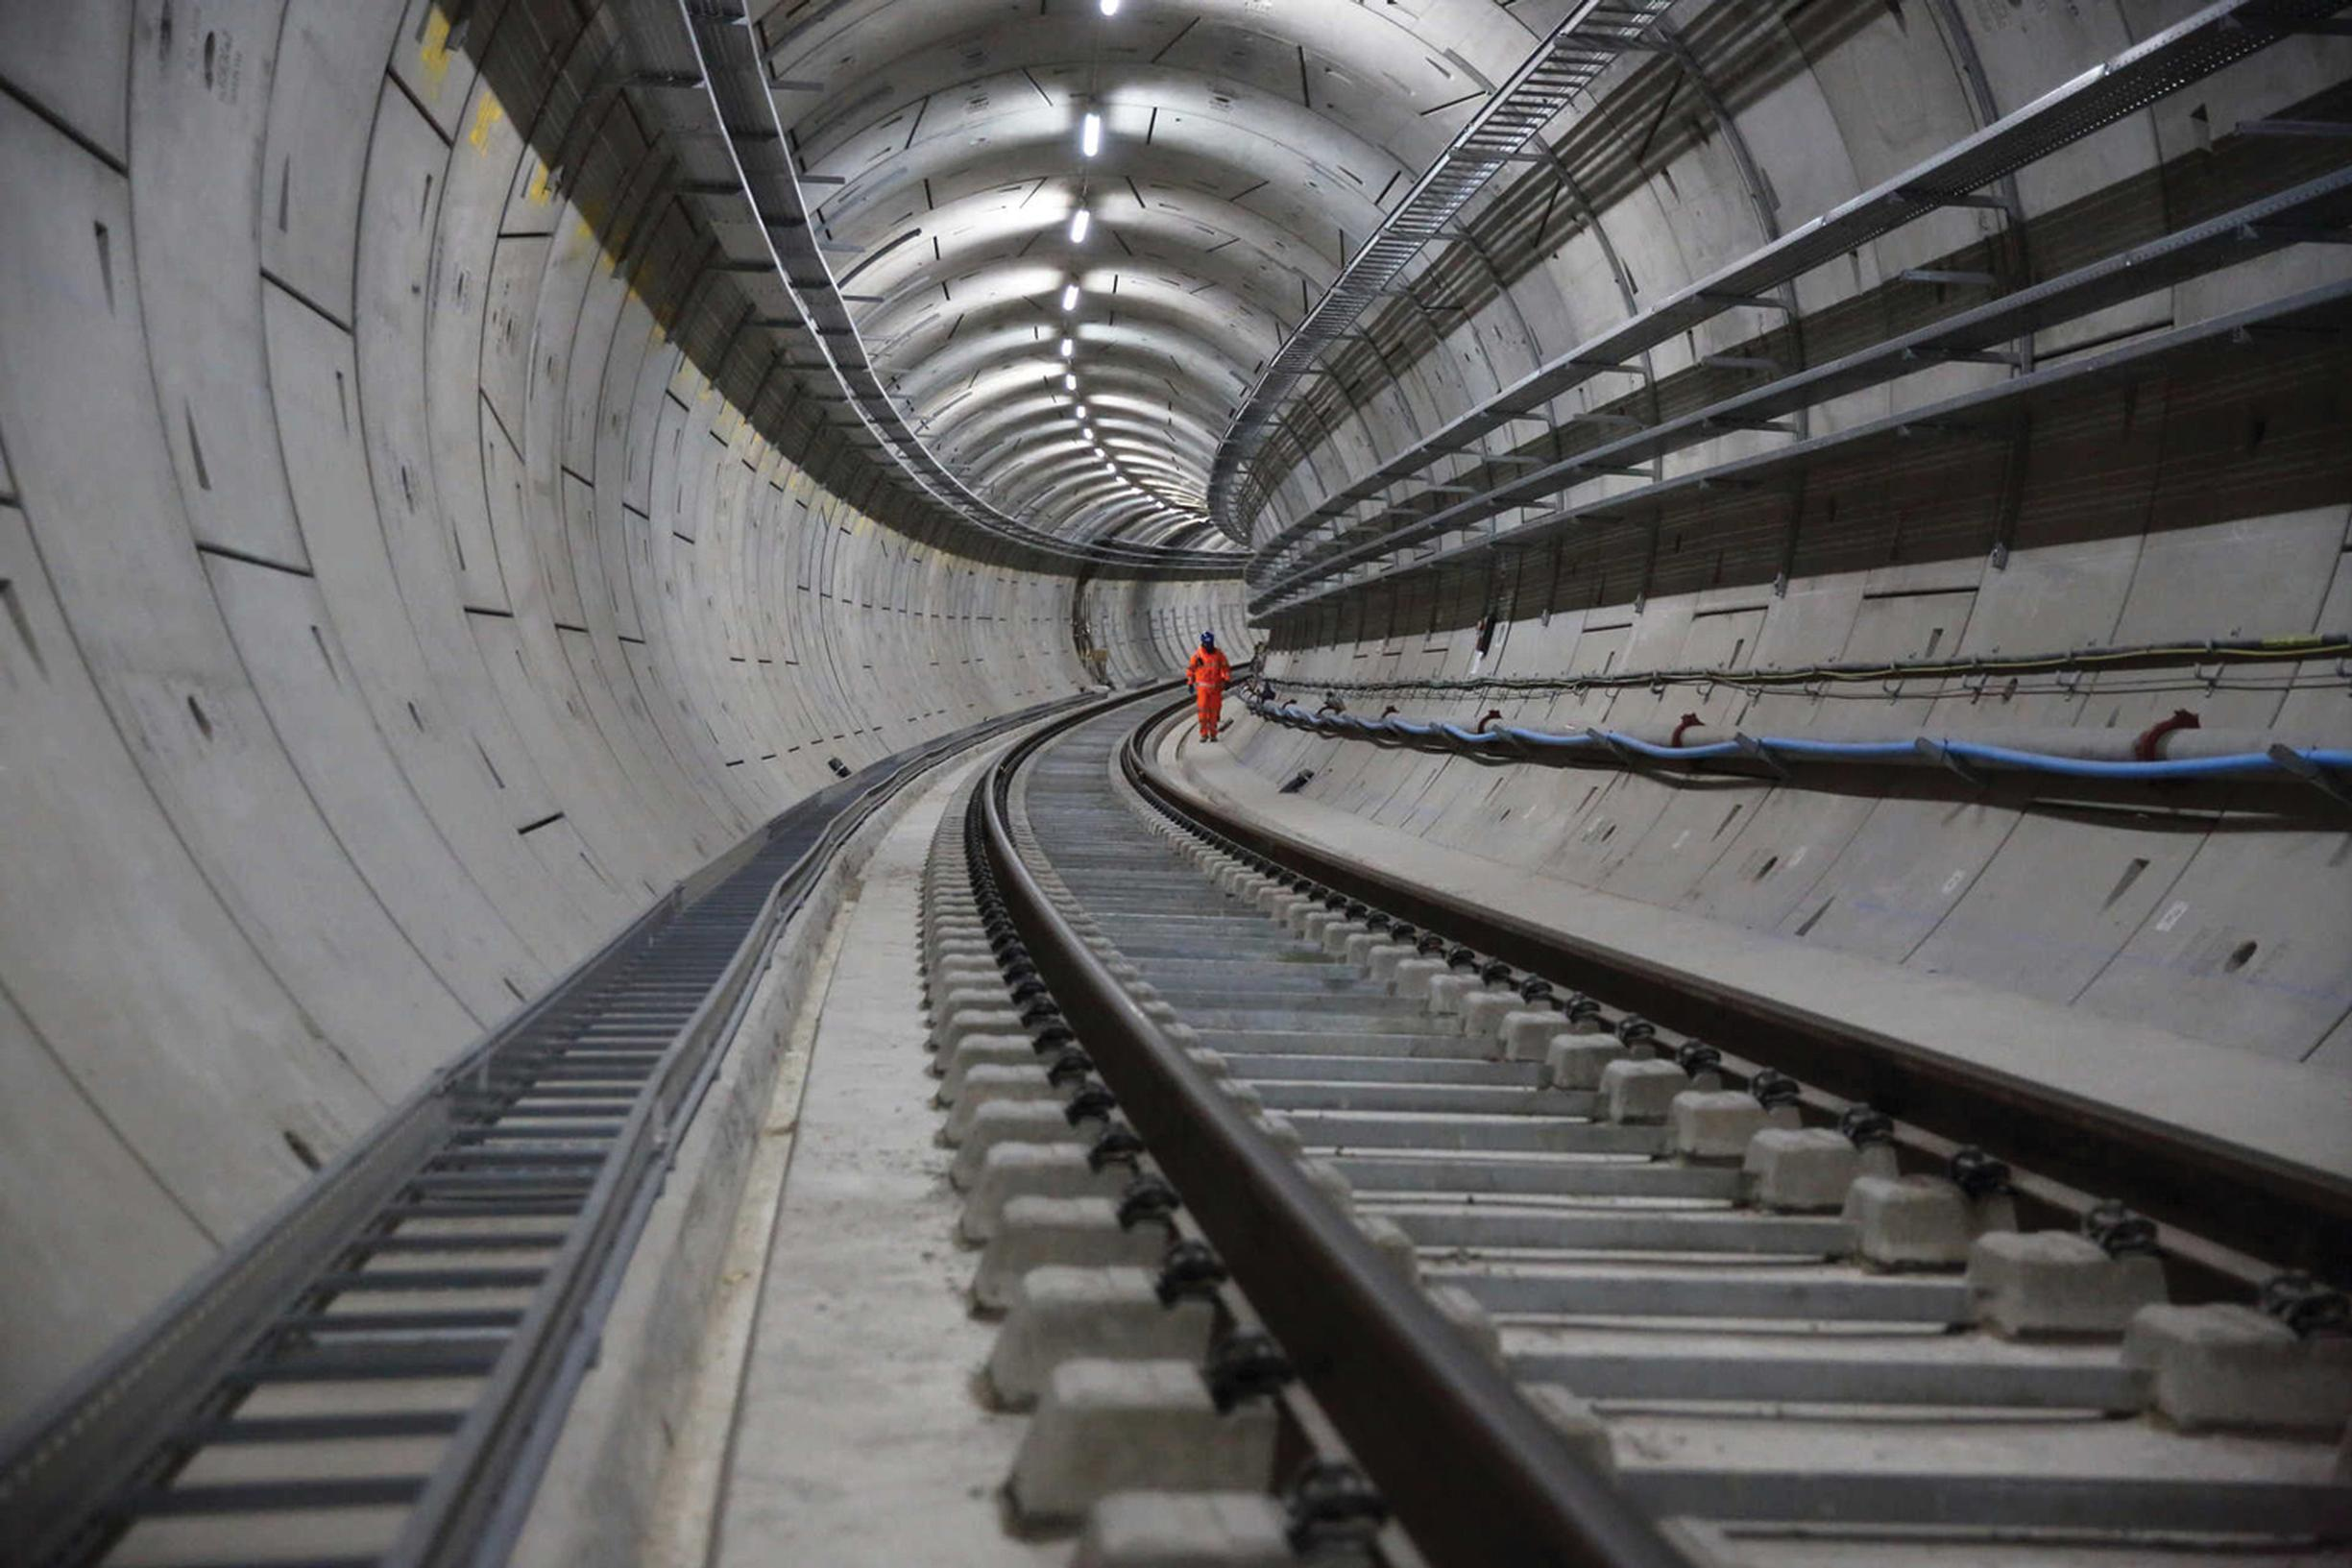 Project leaders should own up to problems, says the DfT, rather than try and hide them, as has happened with Crossrail